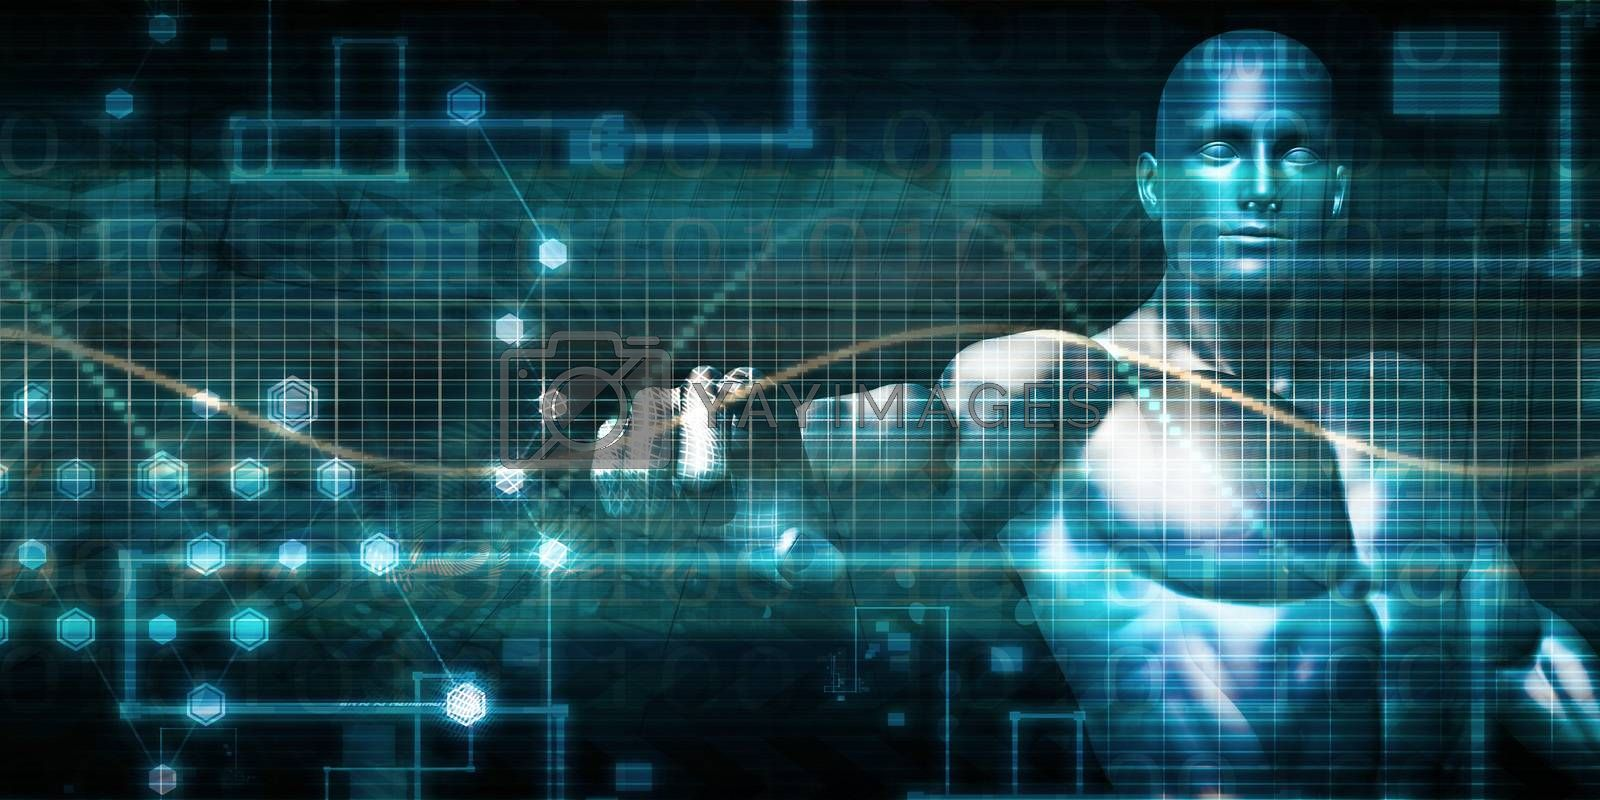 Man Working with Digital Technology of the Future